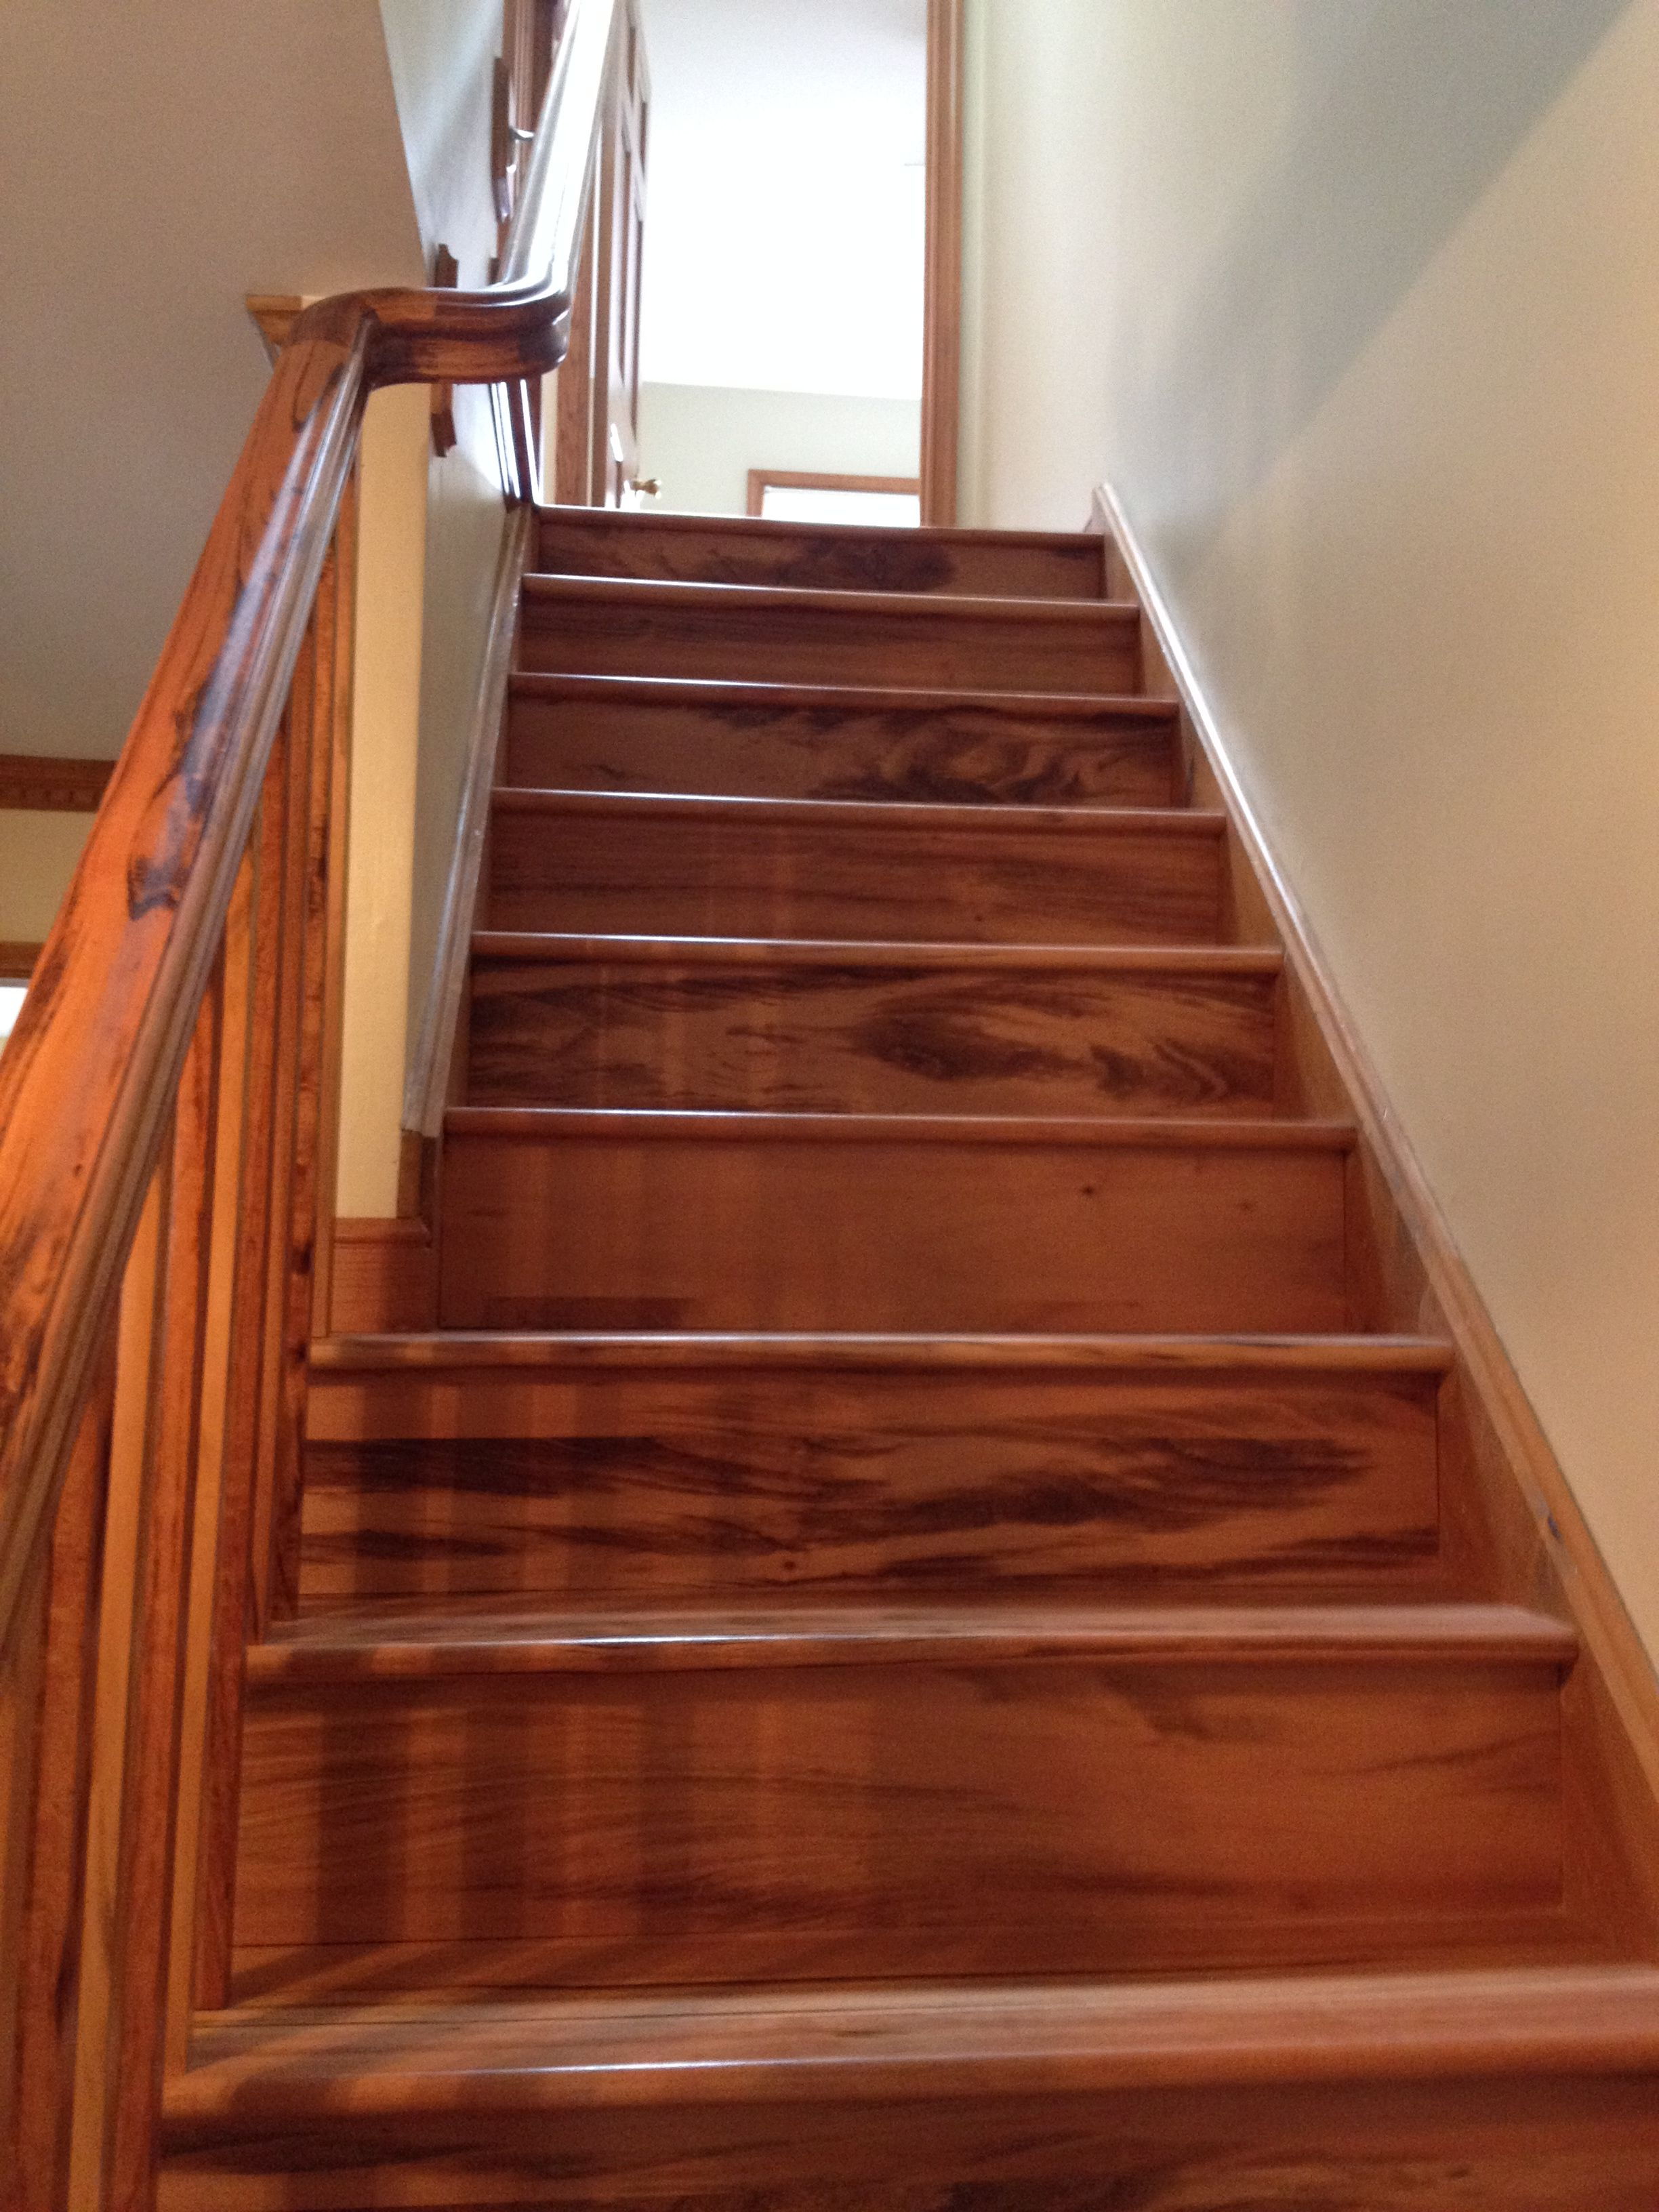 Exceptionnel Looking For Solid Wood Stair Treads? StairSupplies™ Offer New U0026 Replacement  Stair Parts Including Quality Stair Treads U0026 Risers In Over 30 Species Of  Wood.